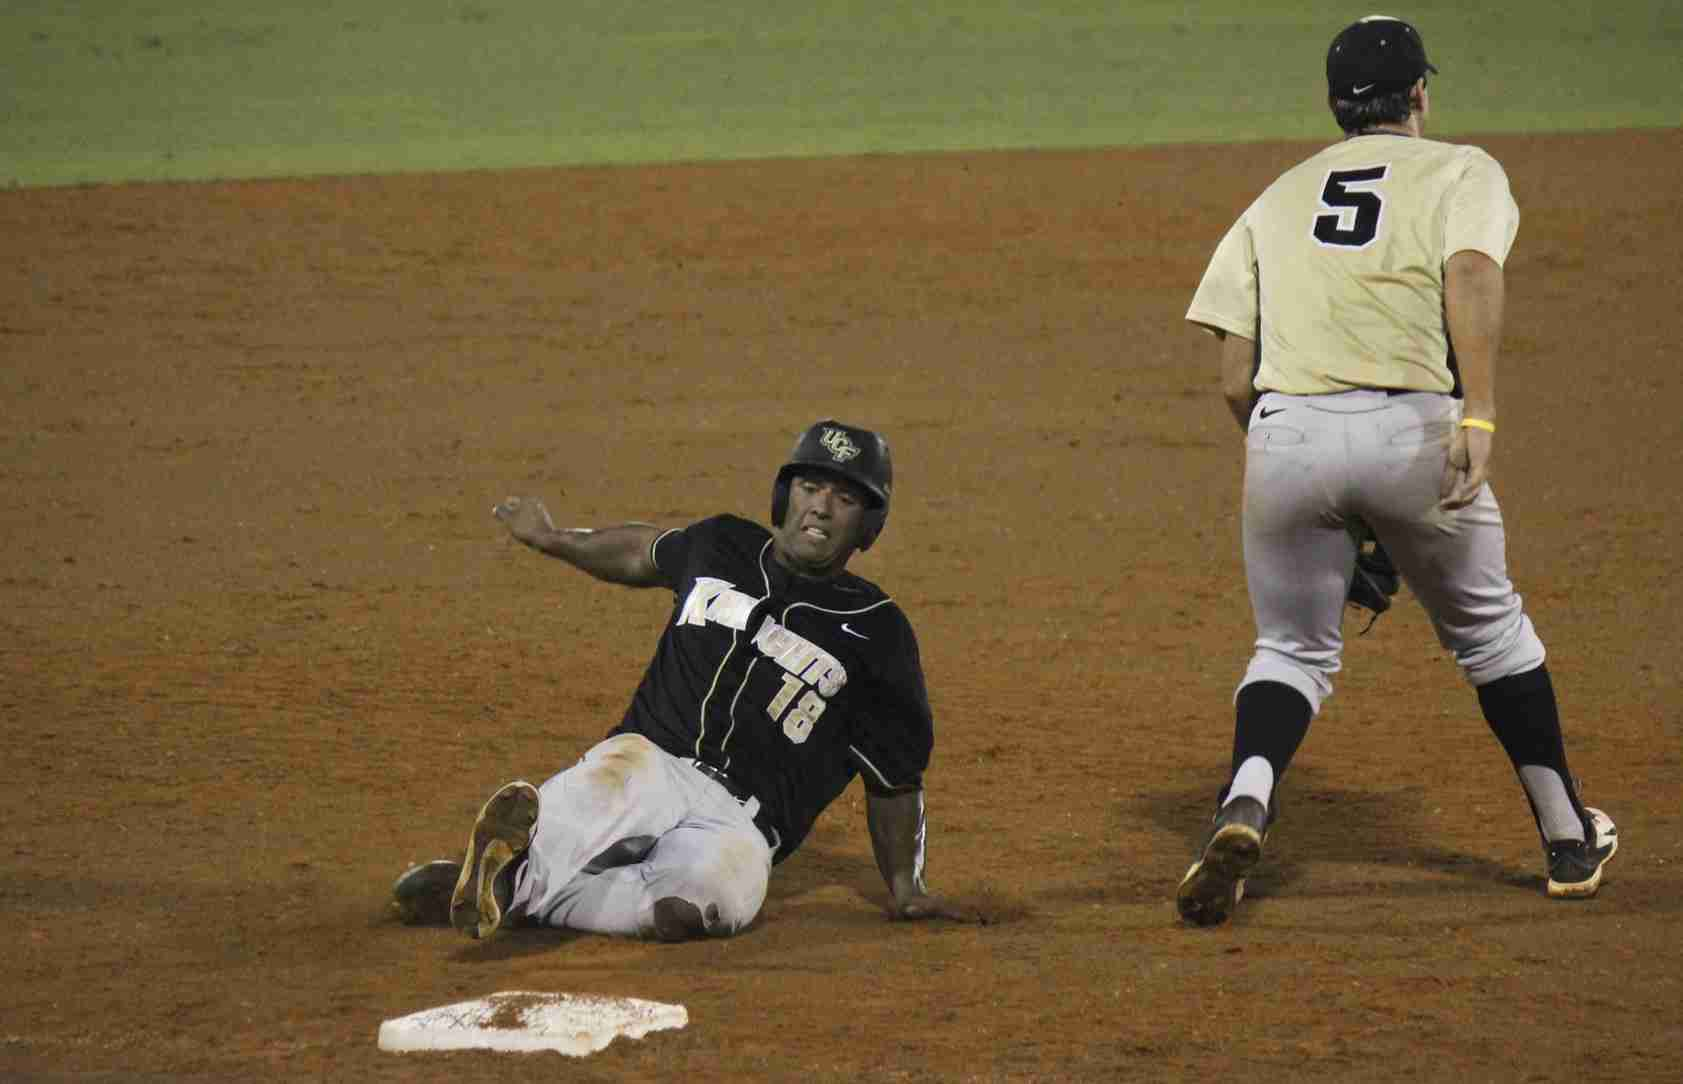 ucf baseball releases schedule featuring 10 tournament teams